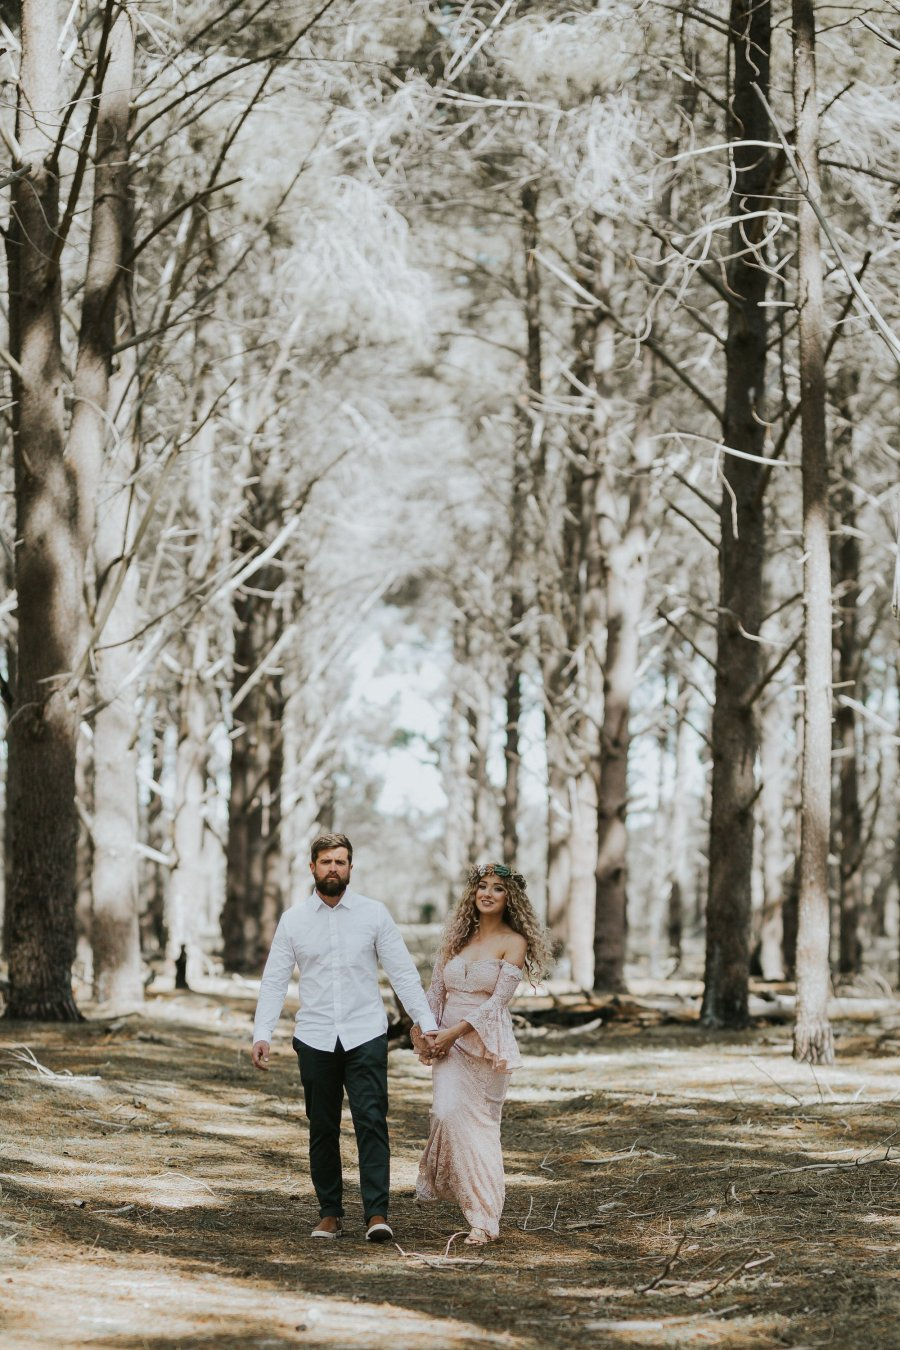 Sinéad + Shane | Pines Forrest Elopement | Ebony Blush Photography | Perth Wedding Photographer61